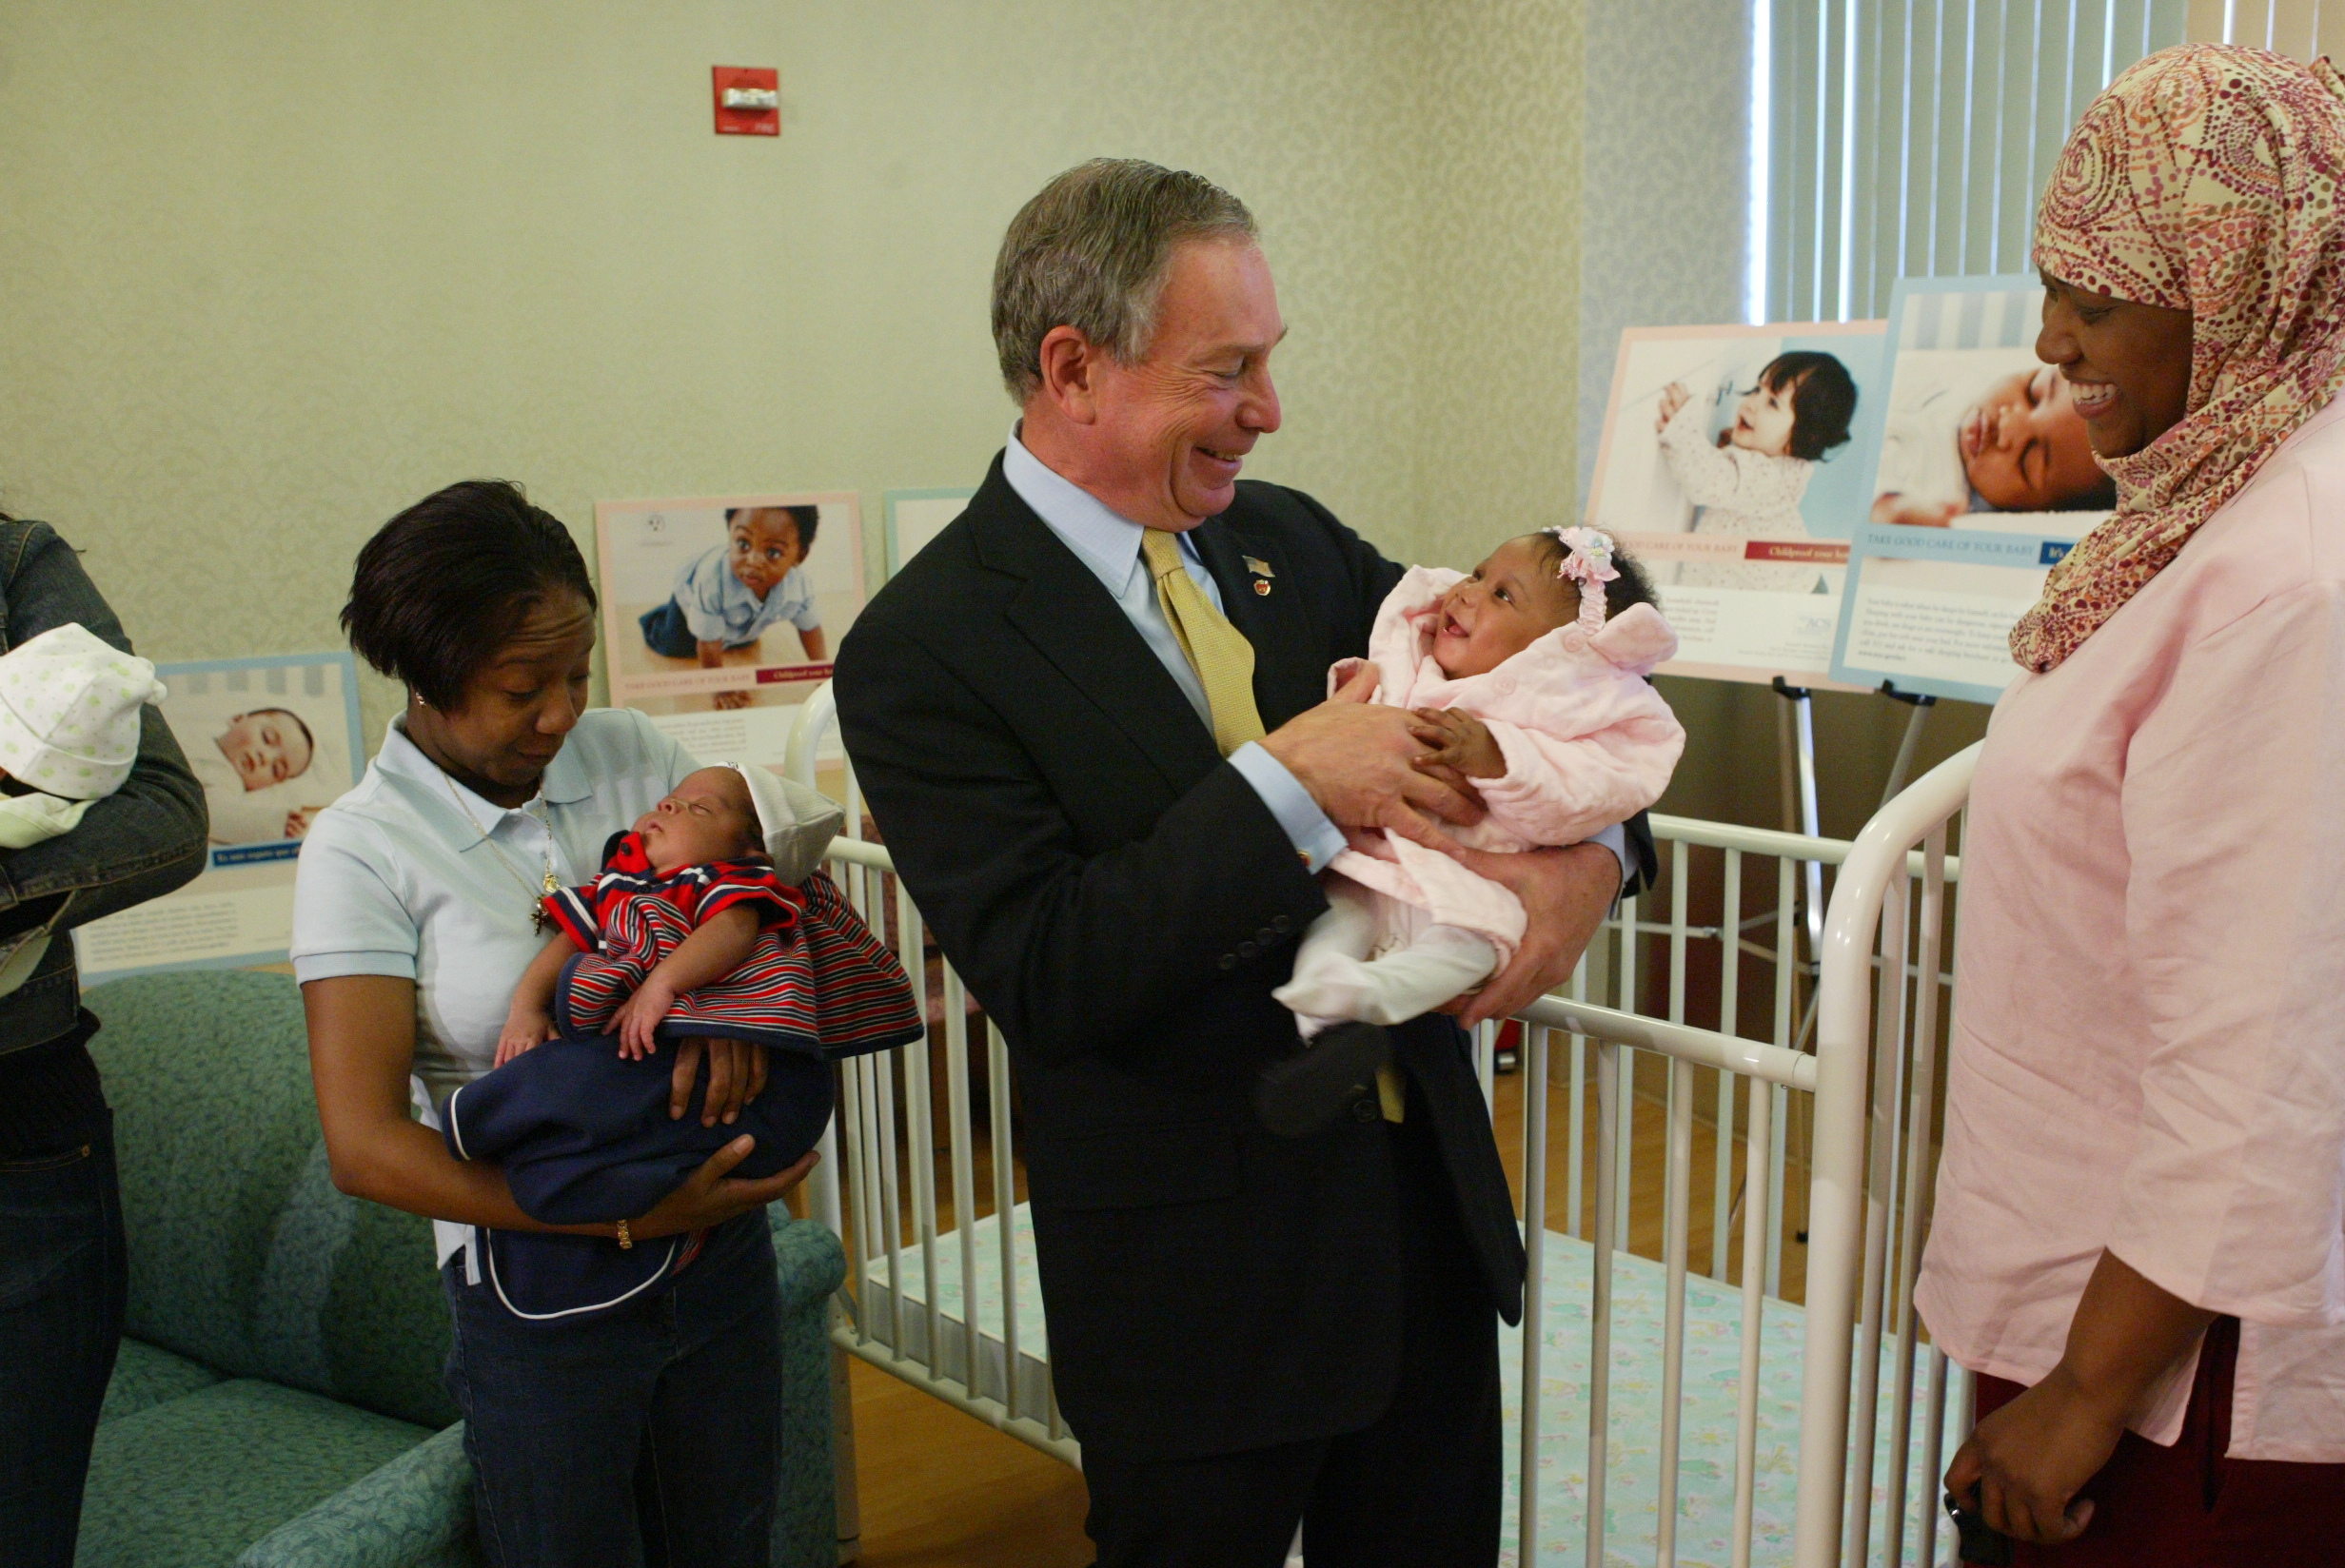 Mike greets infants and their mothers at Harlem Hospital, during the launch of a citywide child safety public service campaign